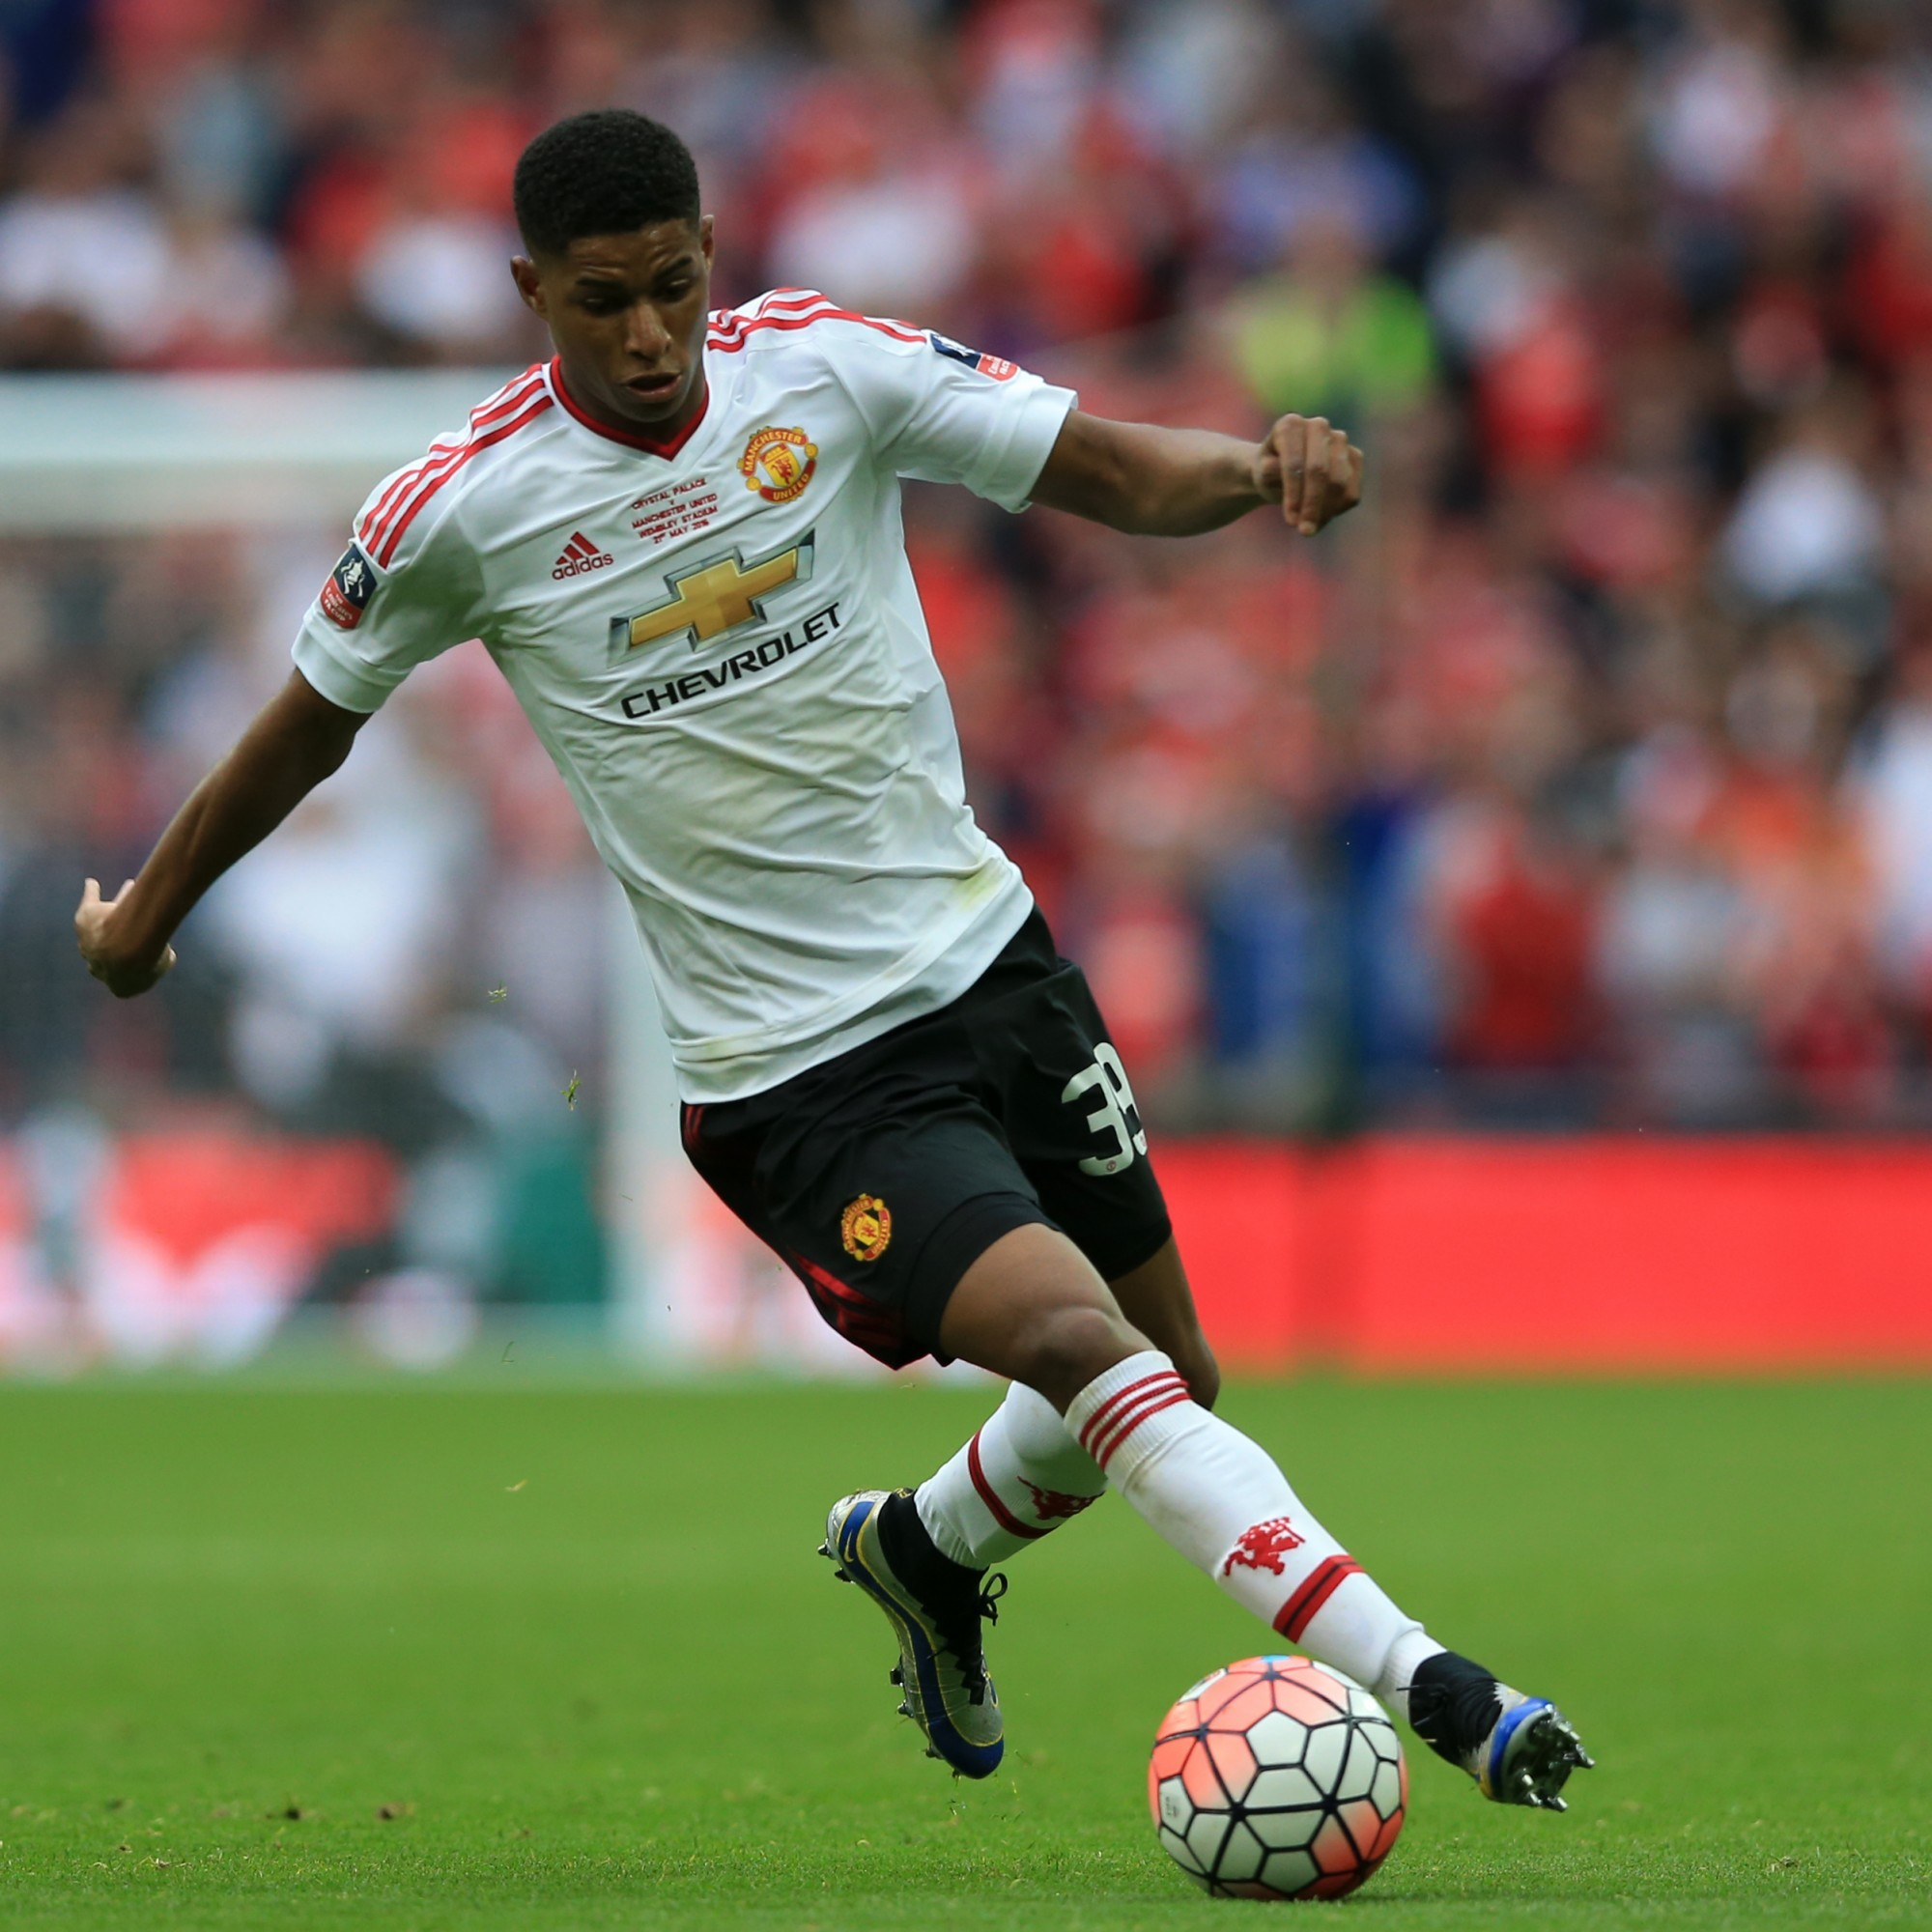 Rashford to get serious pay rise after agreeing new United deal